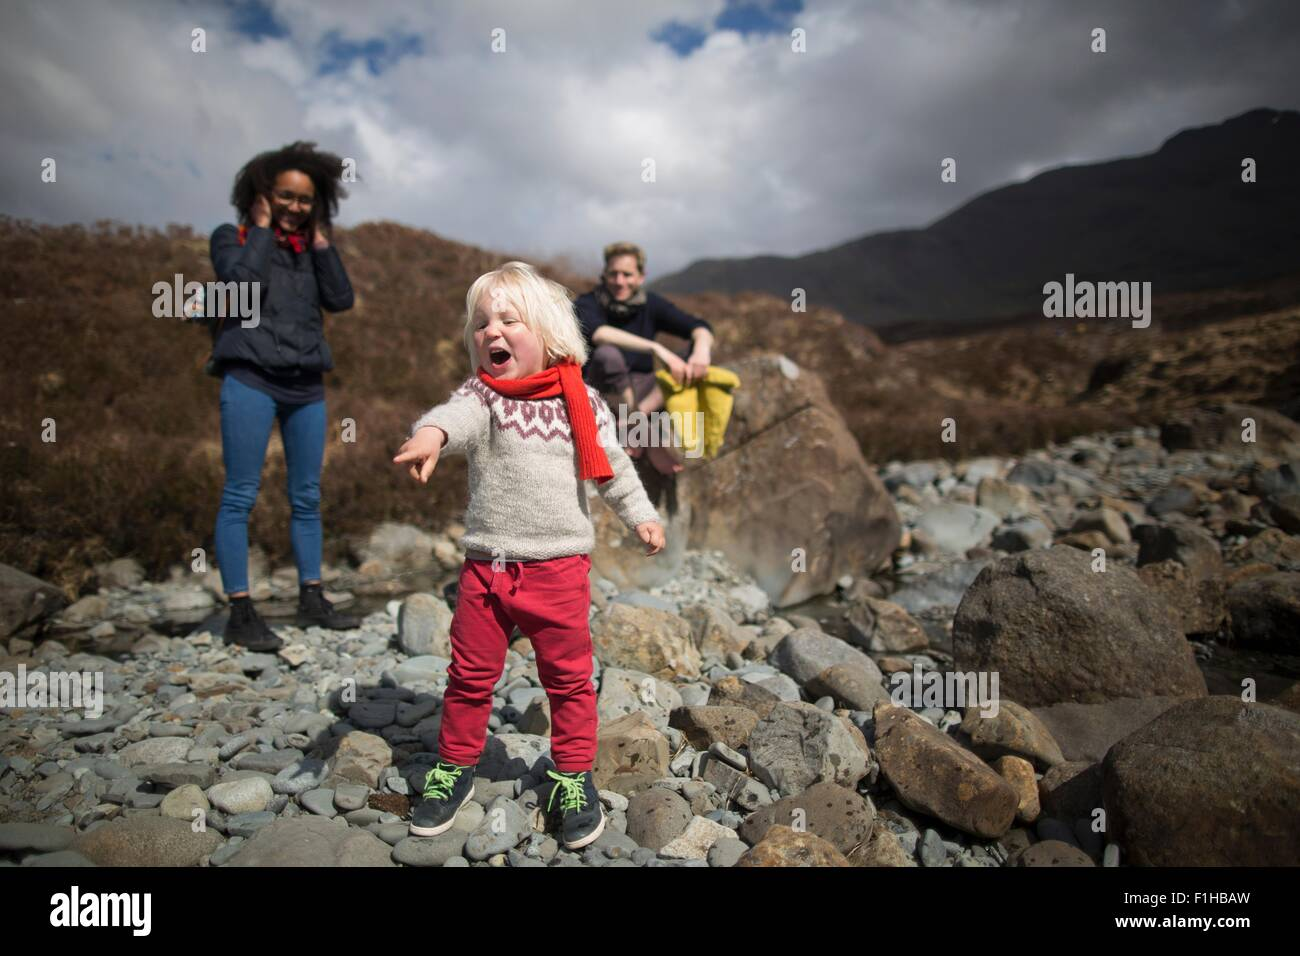 Boy pointing and shouting - Stock Image